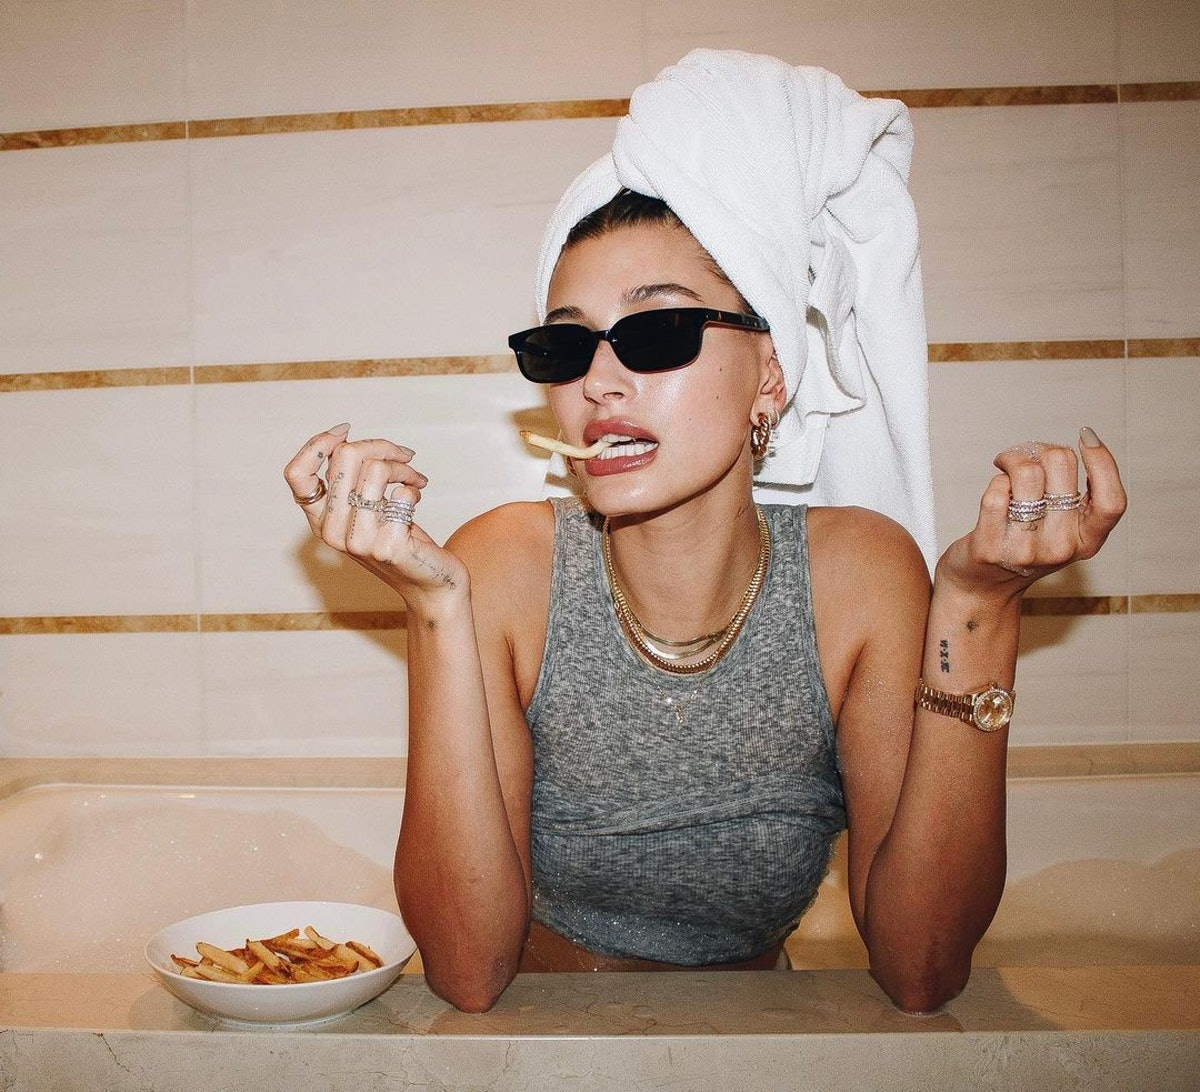 Hailey Bieber eating fries in towel and sunglasses